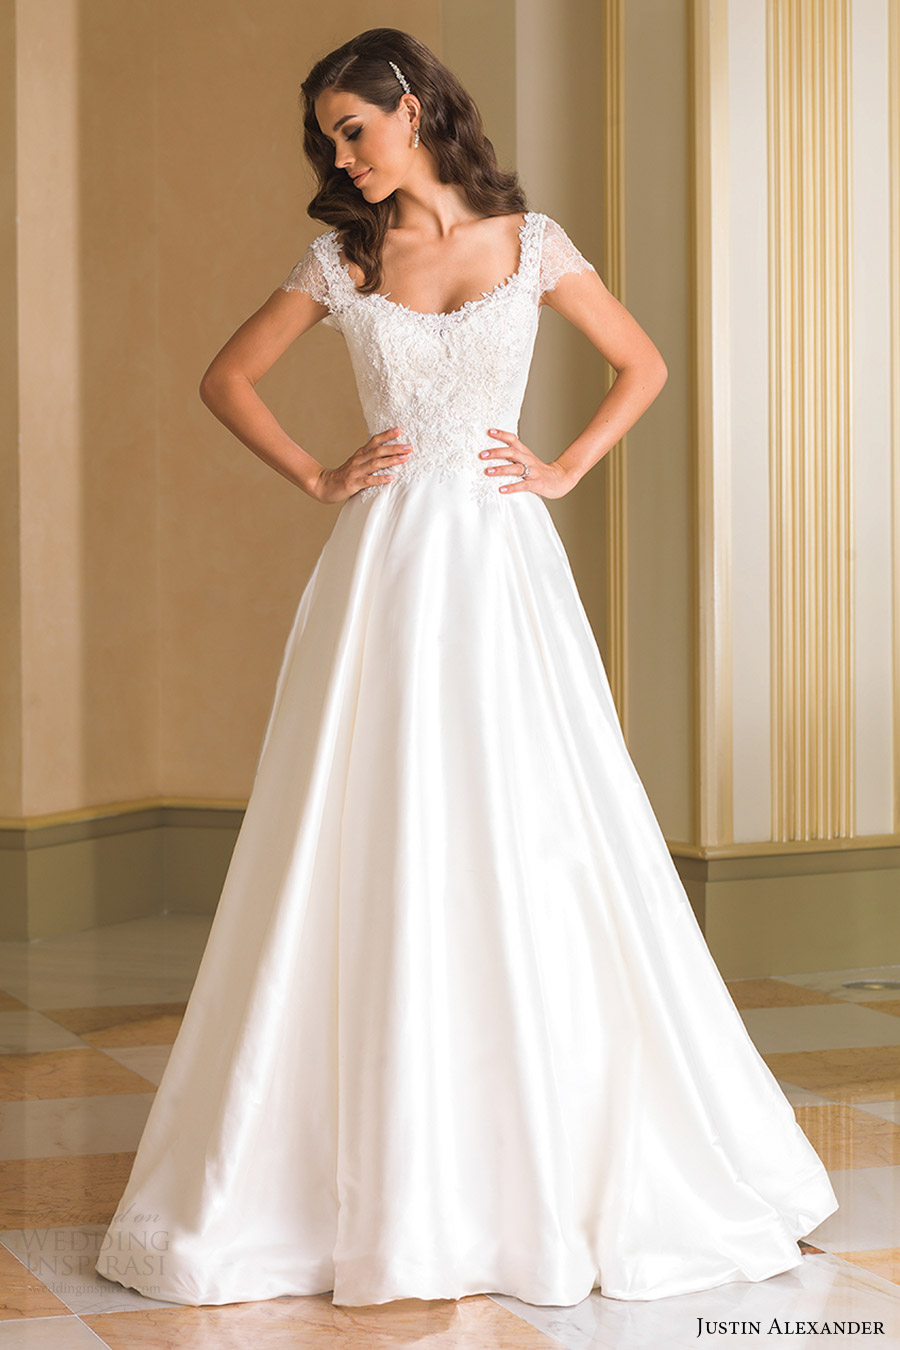 How Much Are Justin Alexander Wedding Dresses